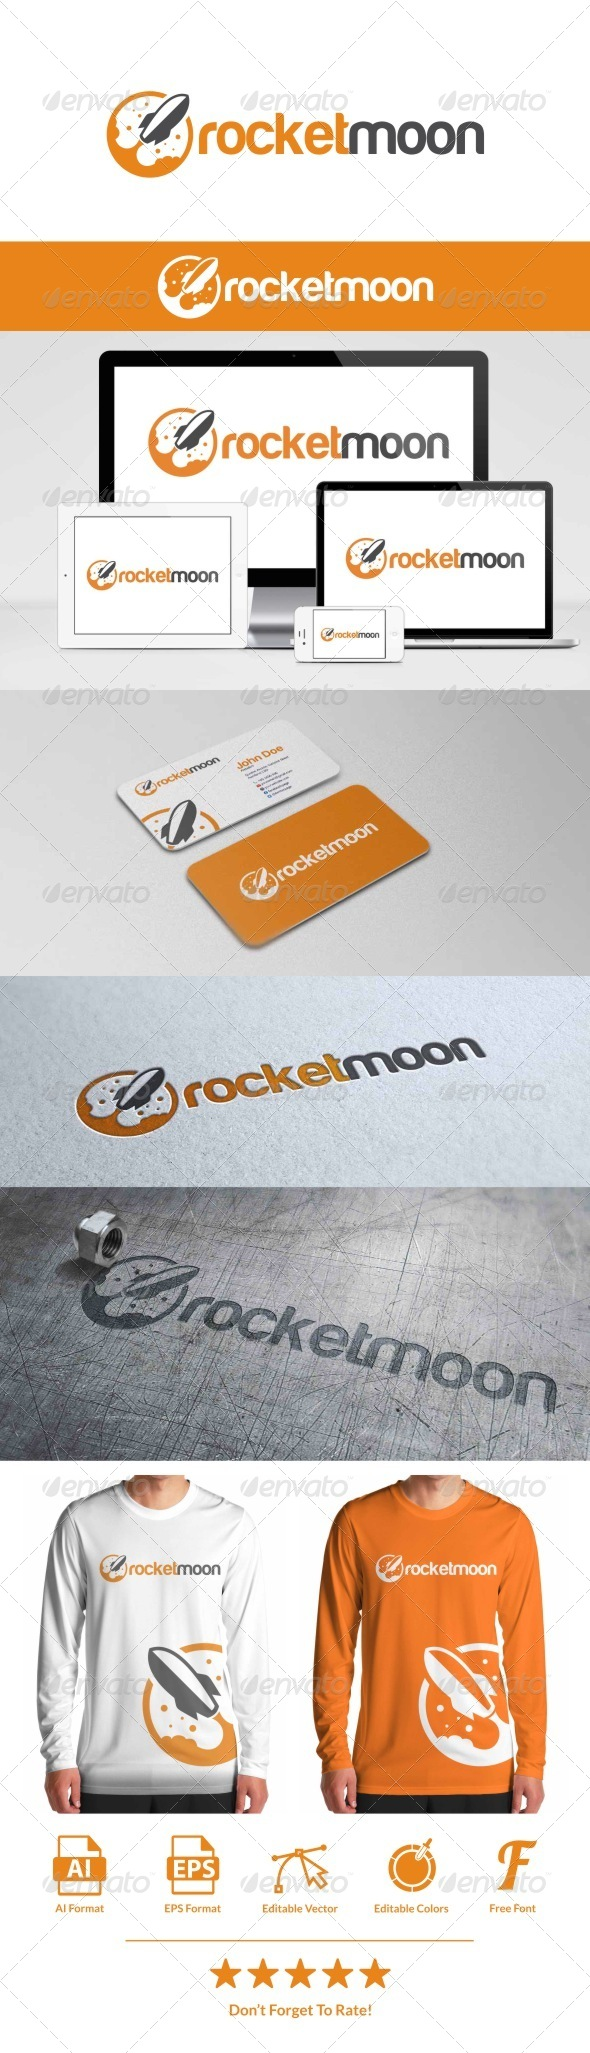 GraphicRiver Rocket Moon Logo 8056415